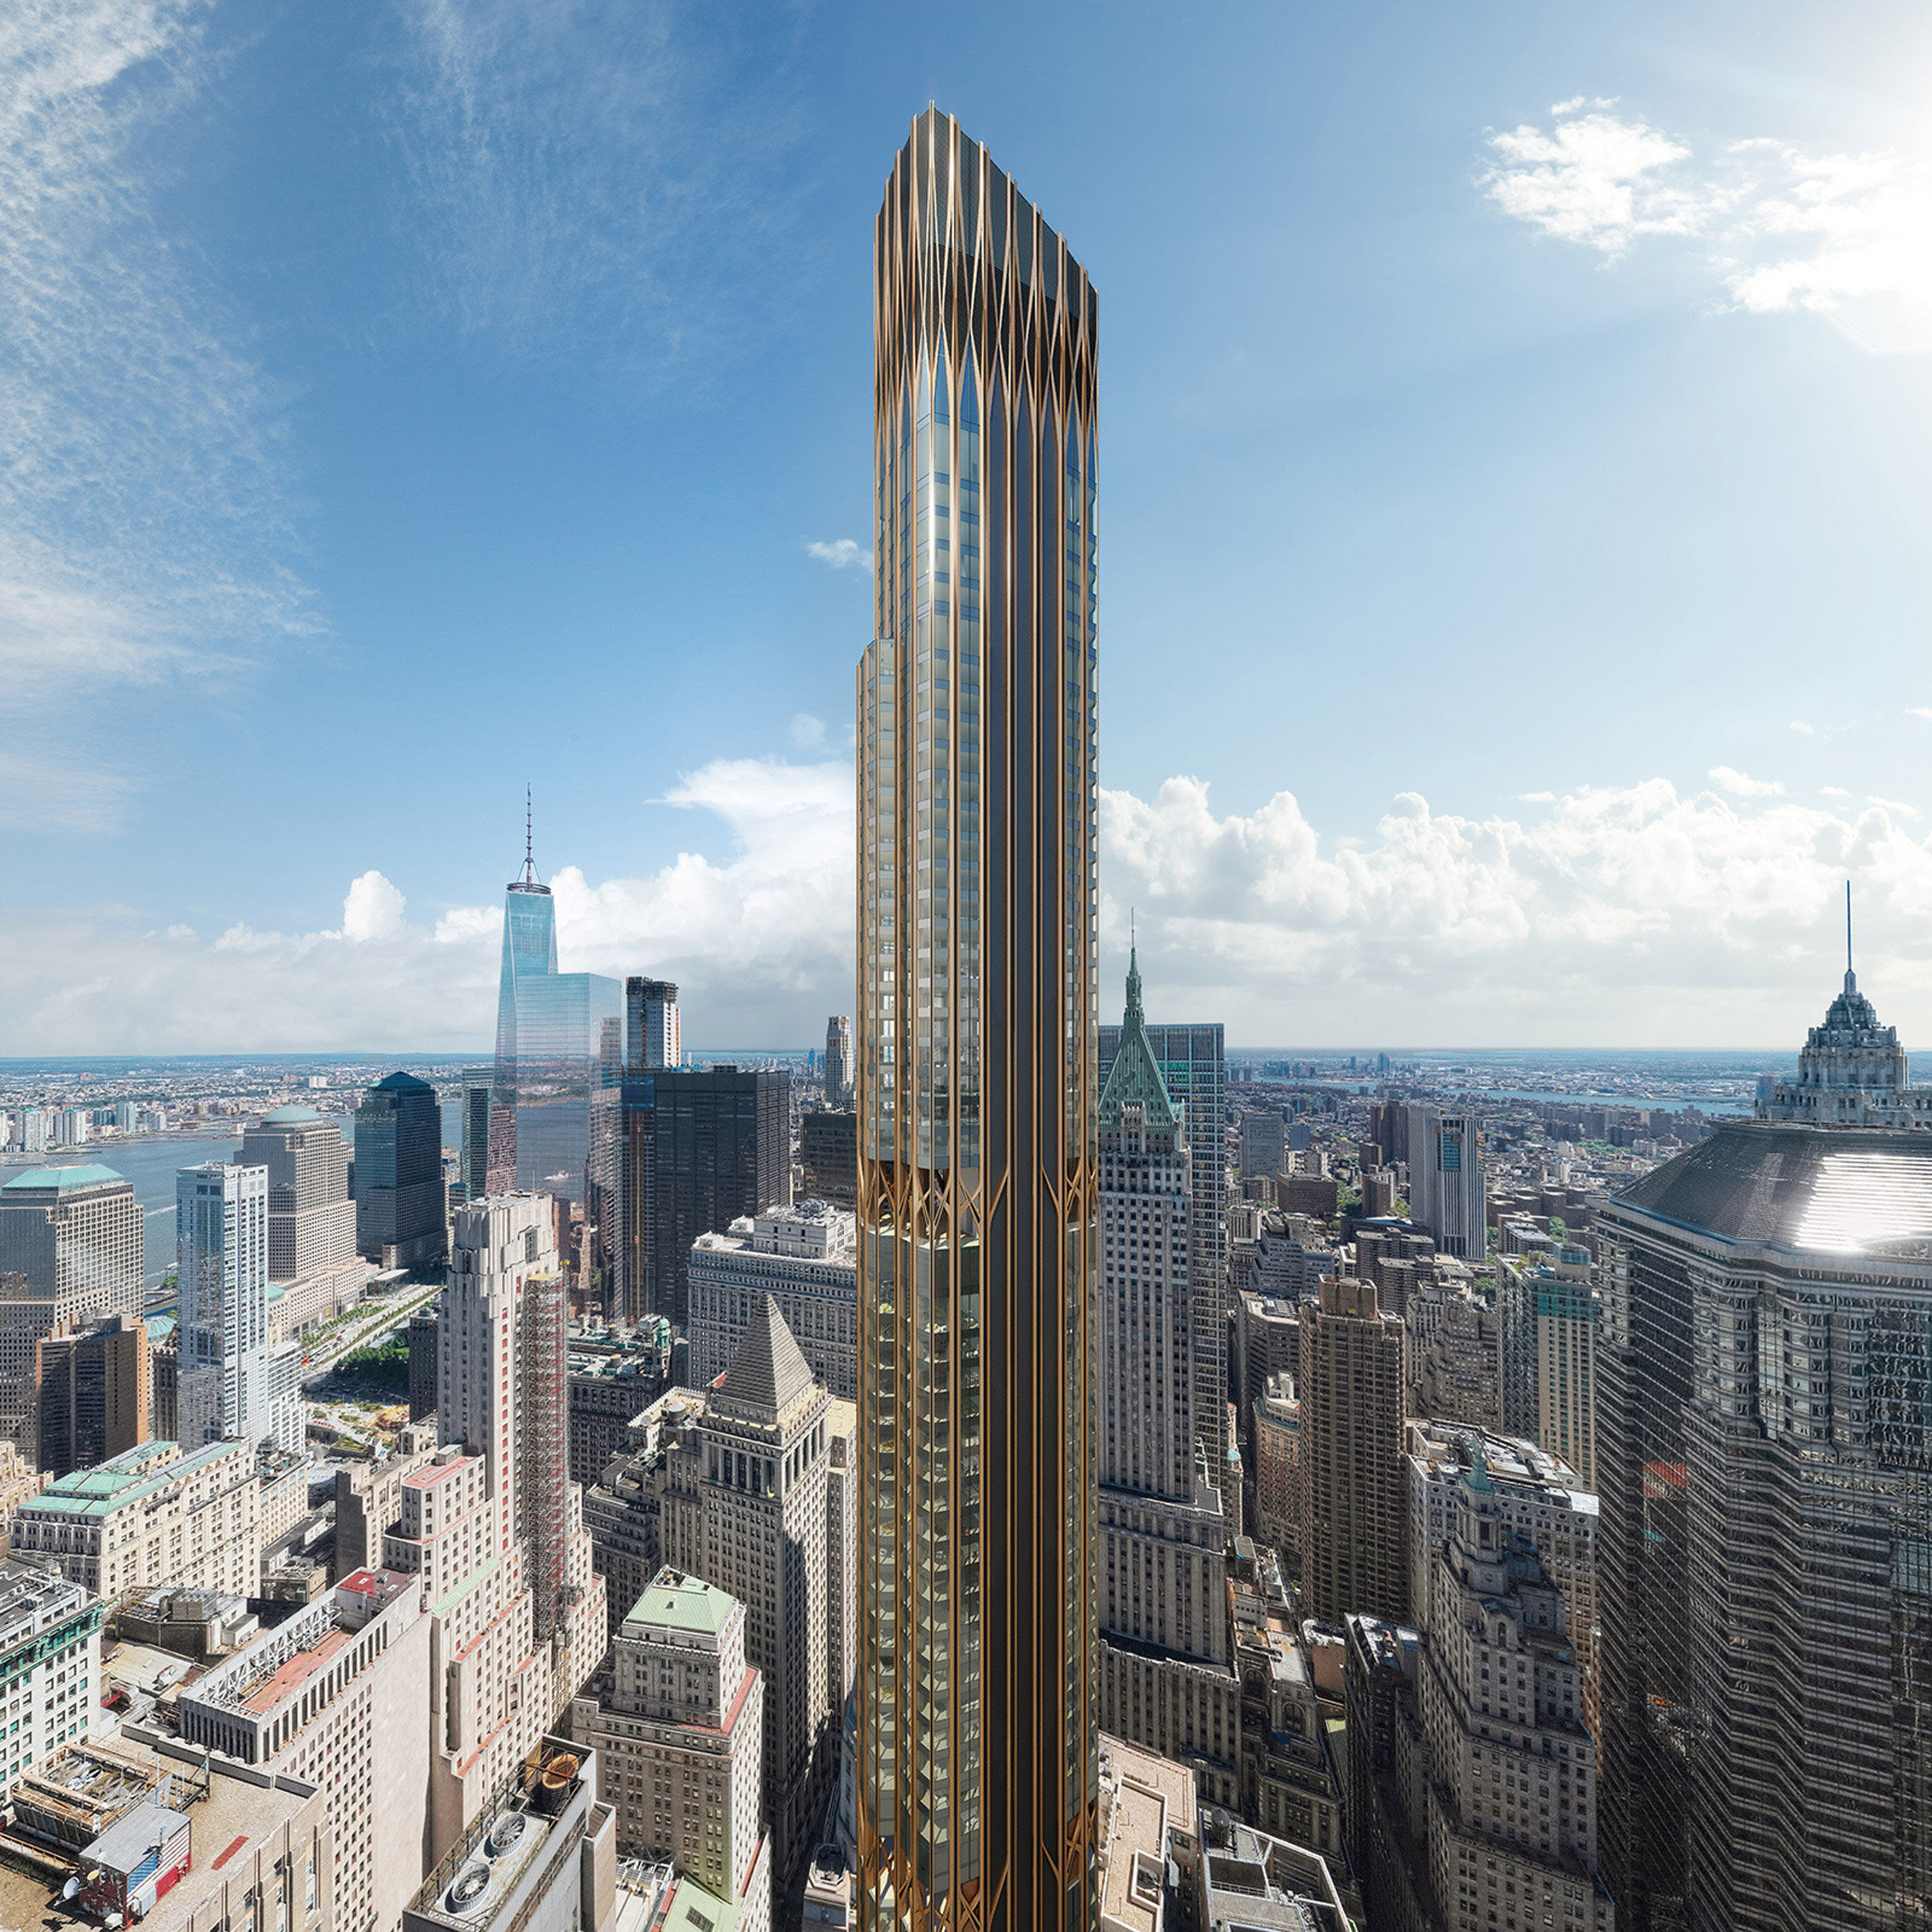 CetraRuddy's 45 Broad Street to become Lower Manhattan's tallest residential skyscraper